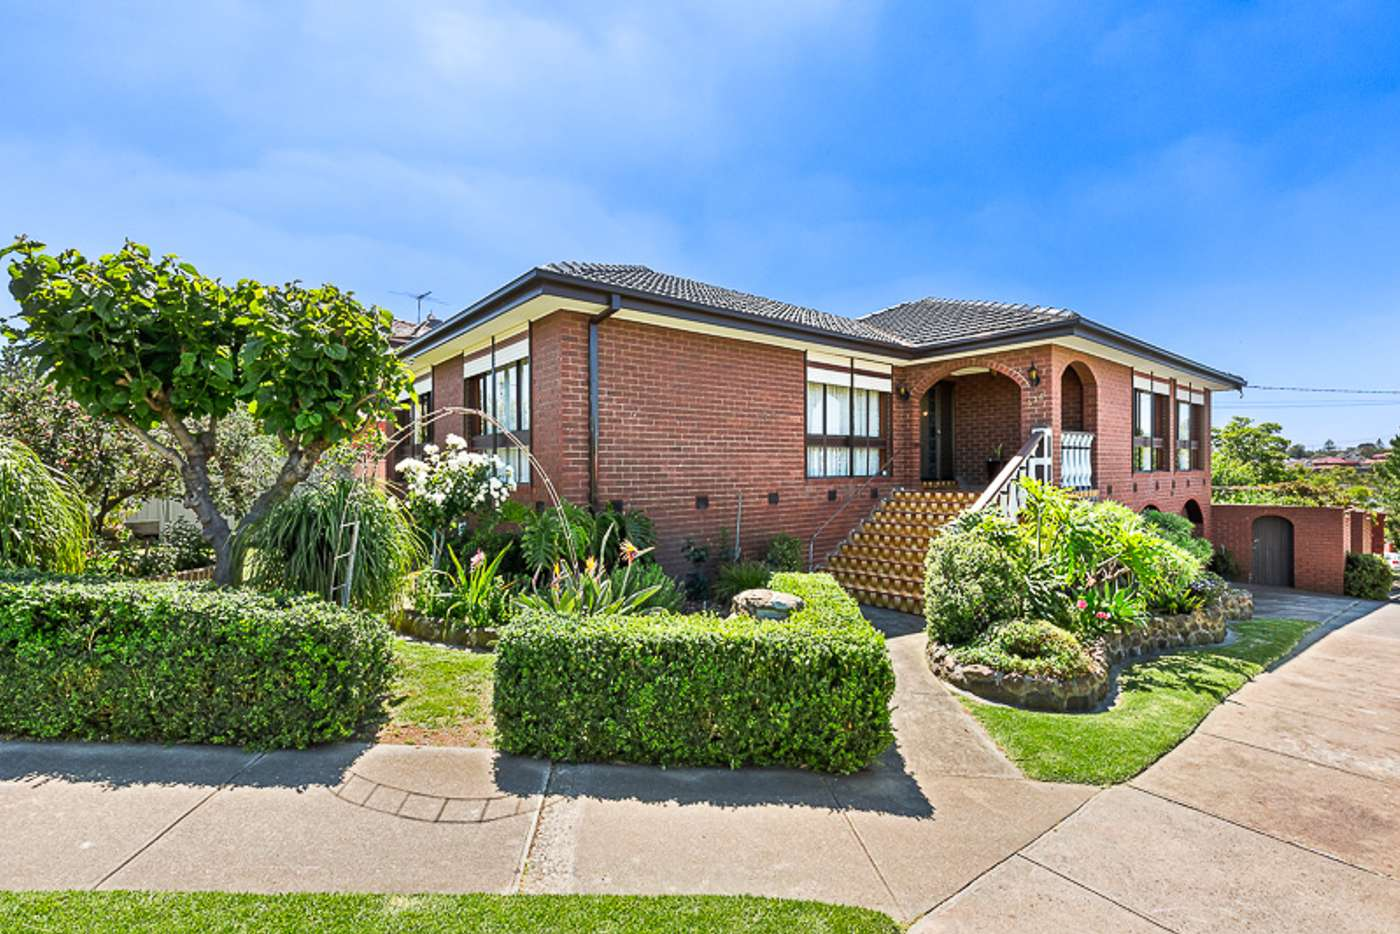 Main view of Homely house listing, 476 Fullarton Road, Airport West VIC 3042